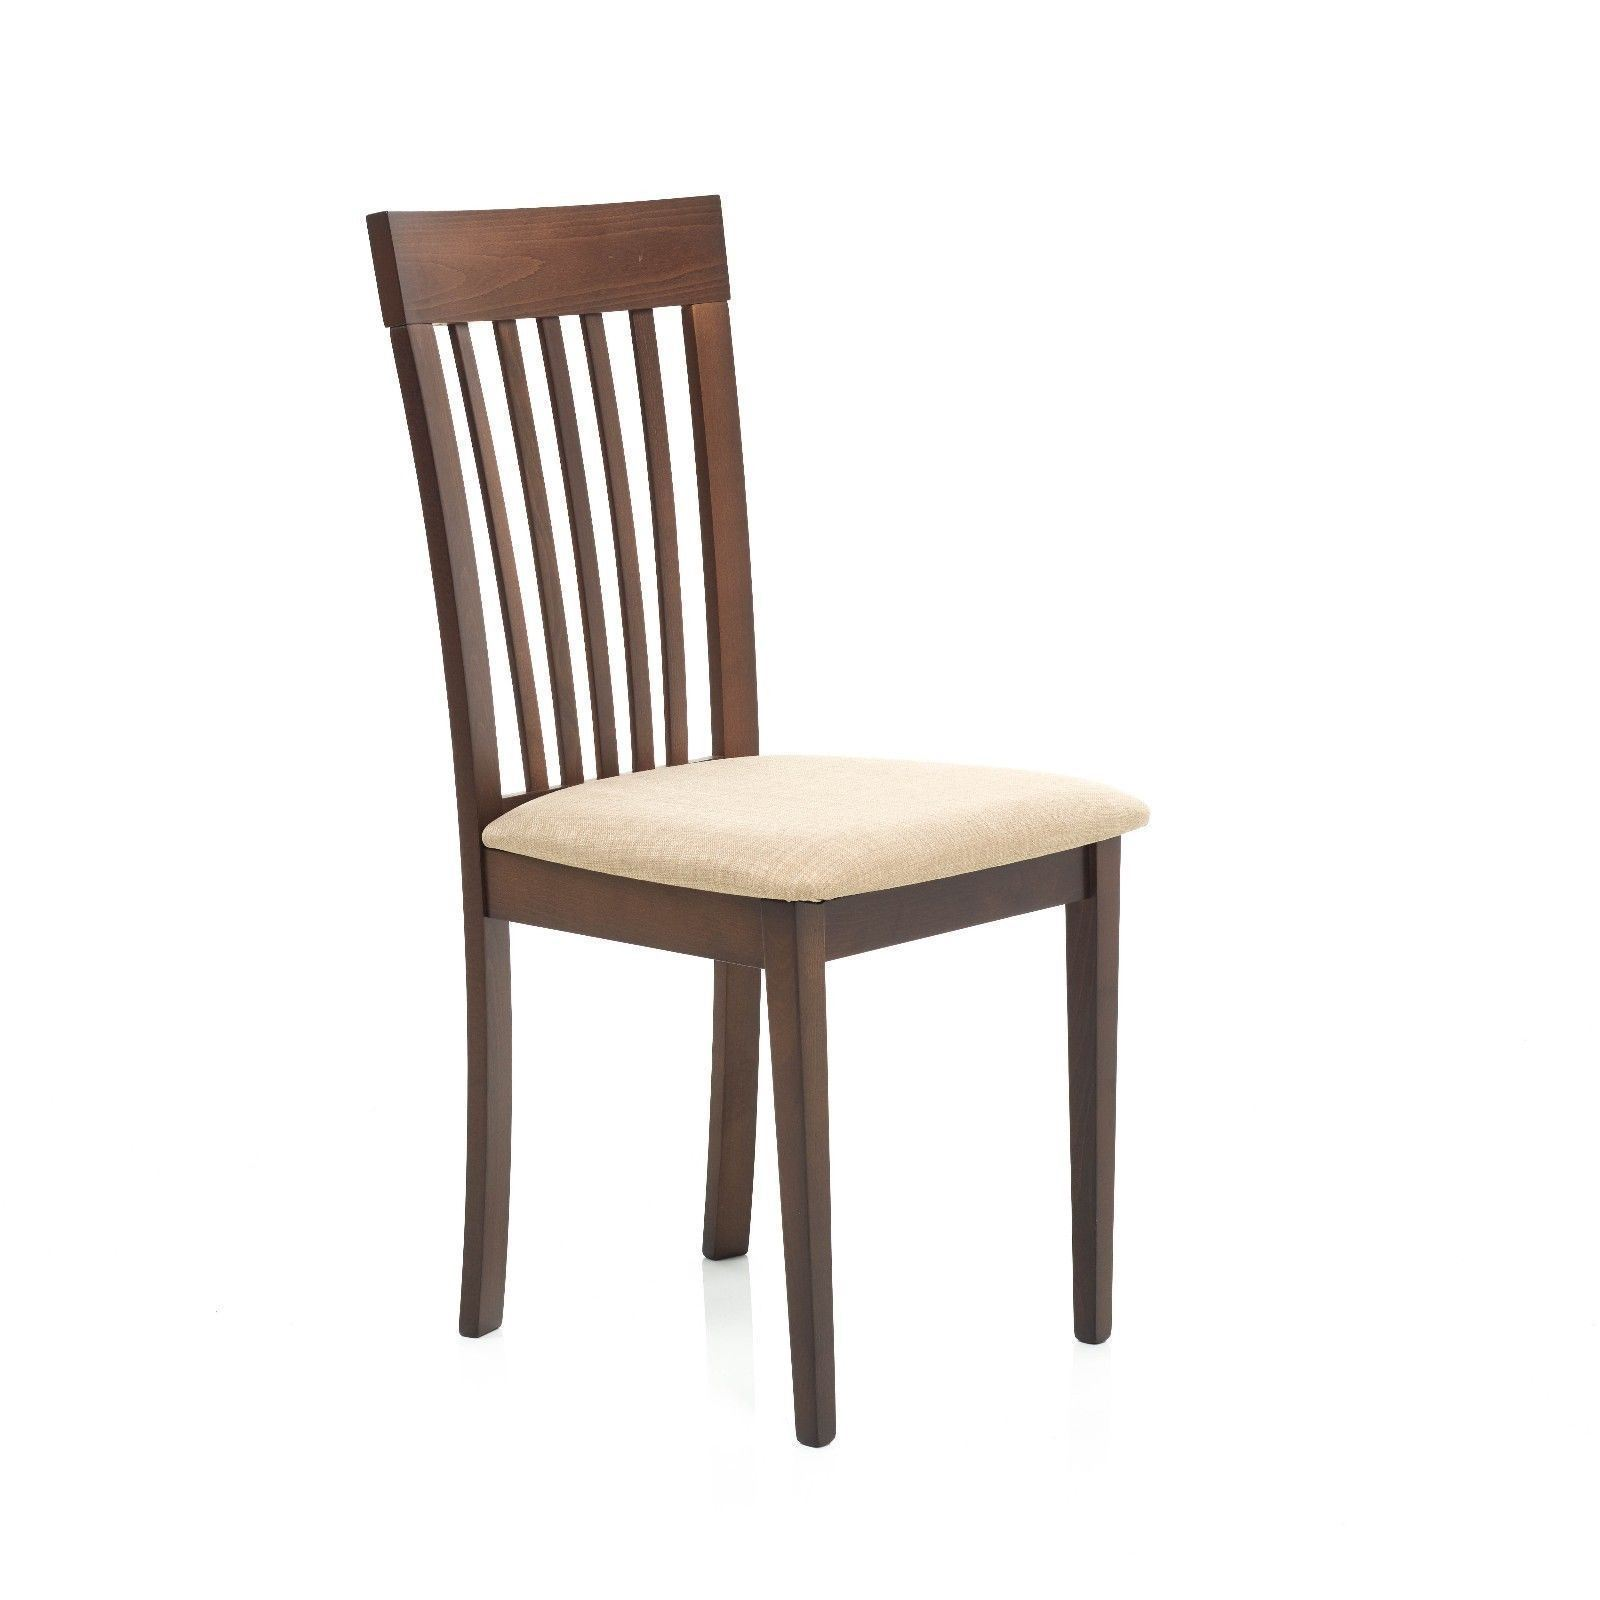 oak kitchen chairs free standing pantries dining solid wood leather foamed seat walnut chair